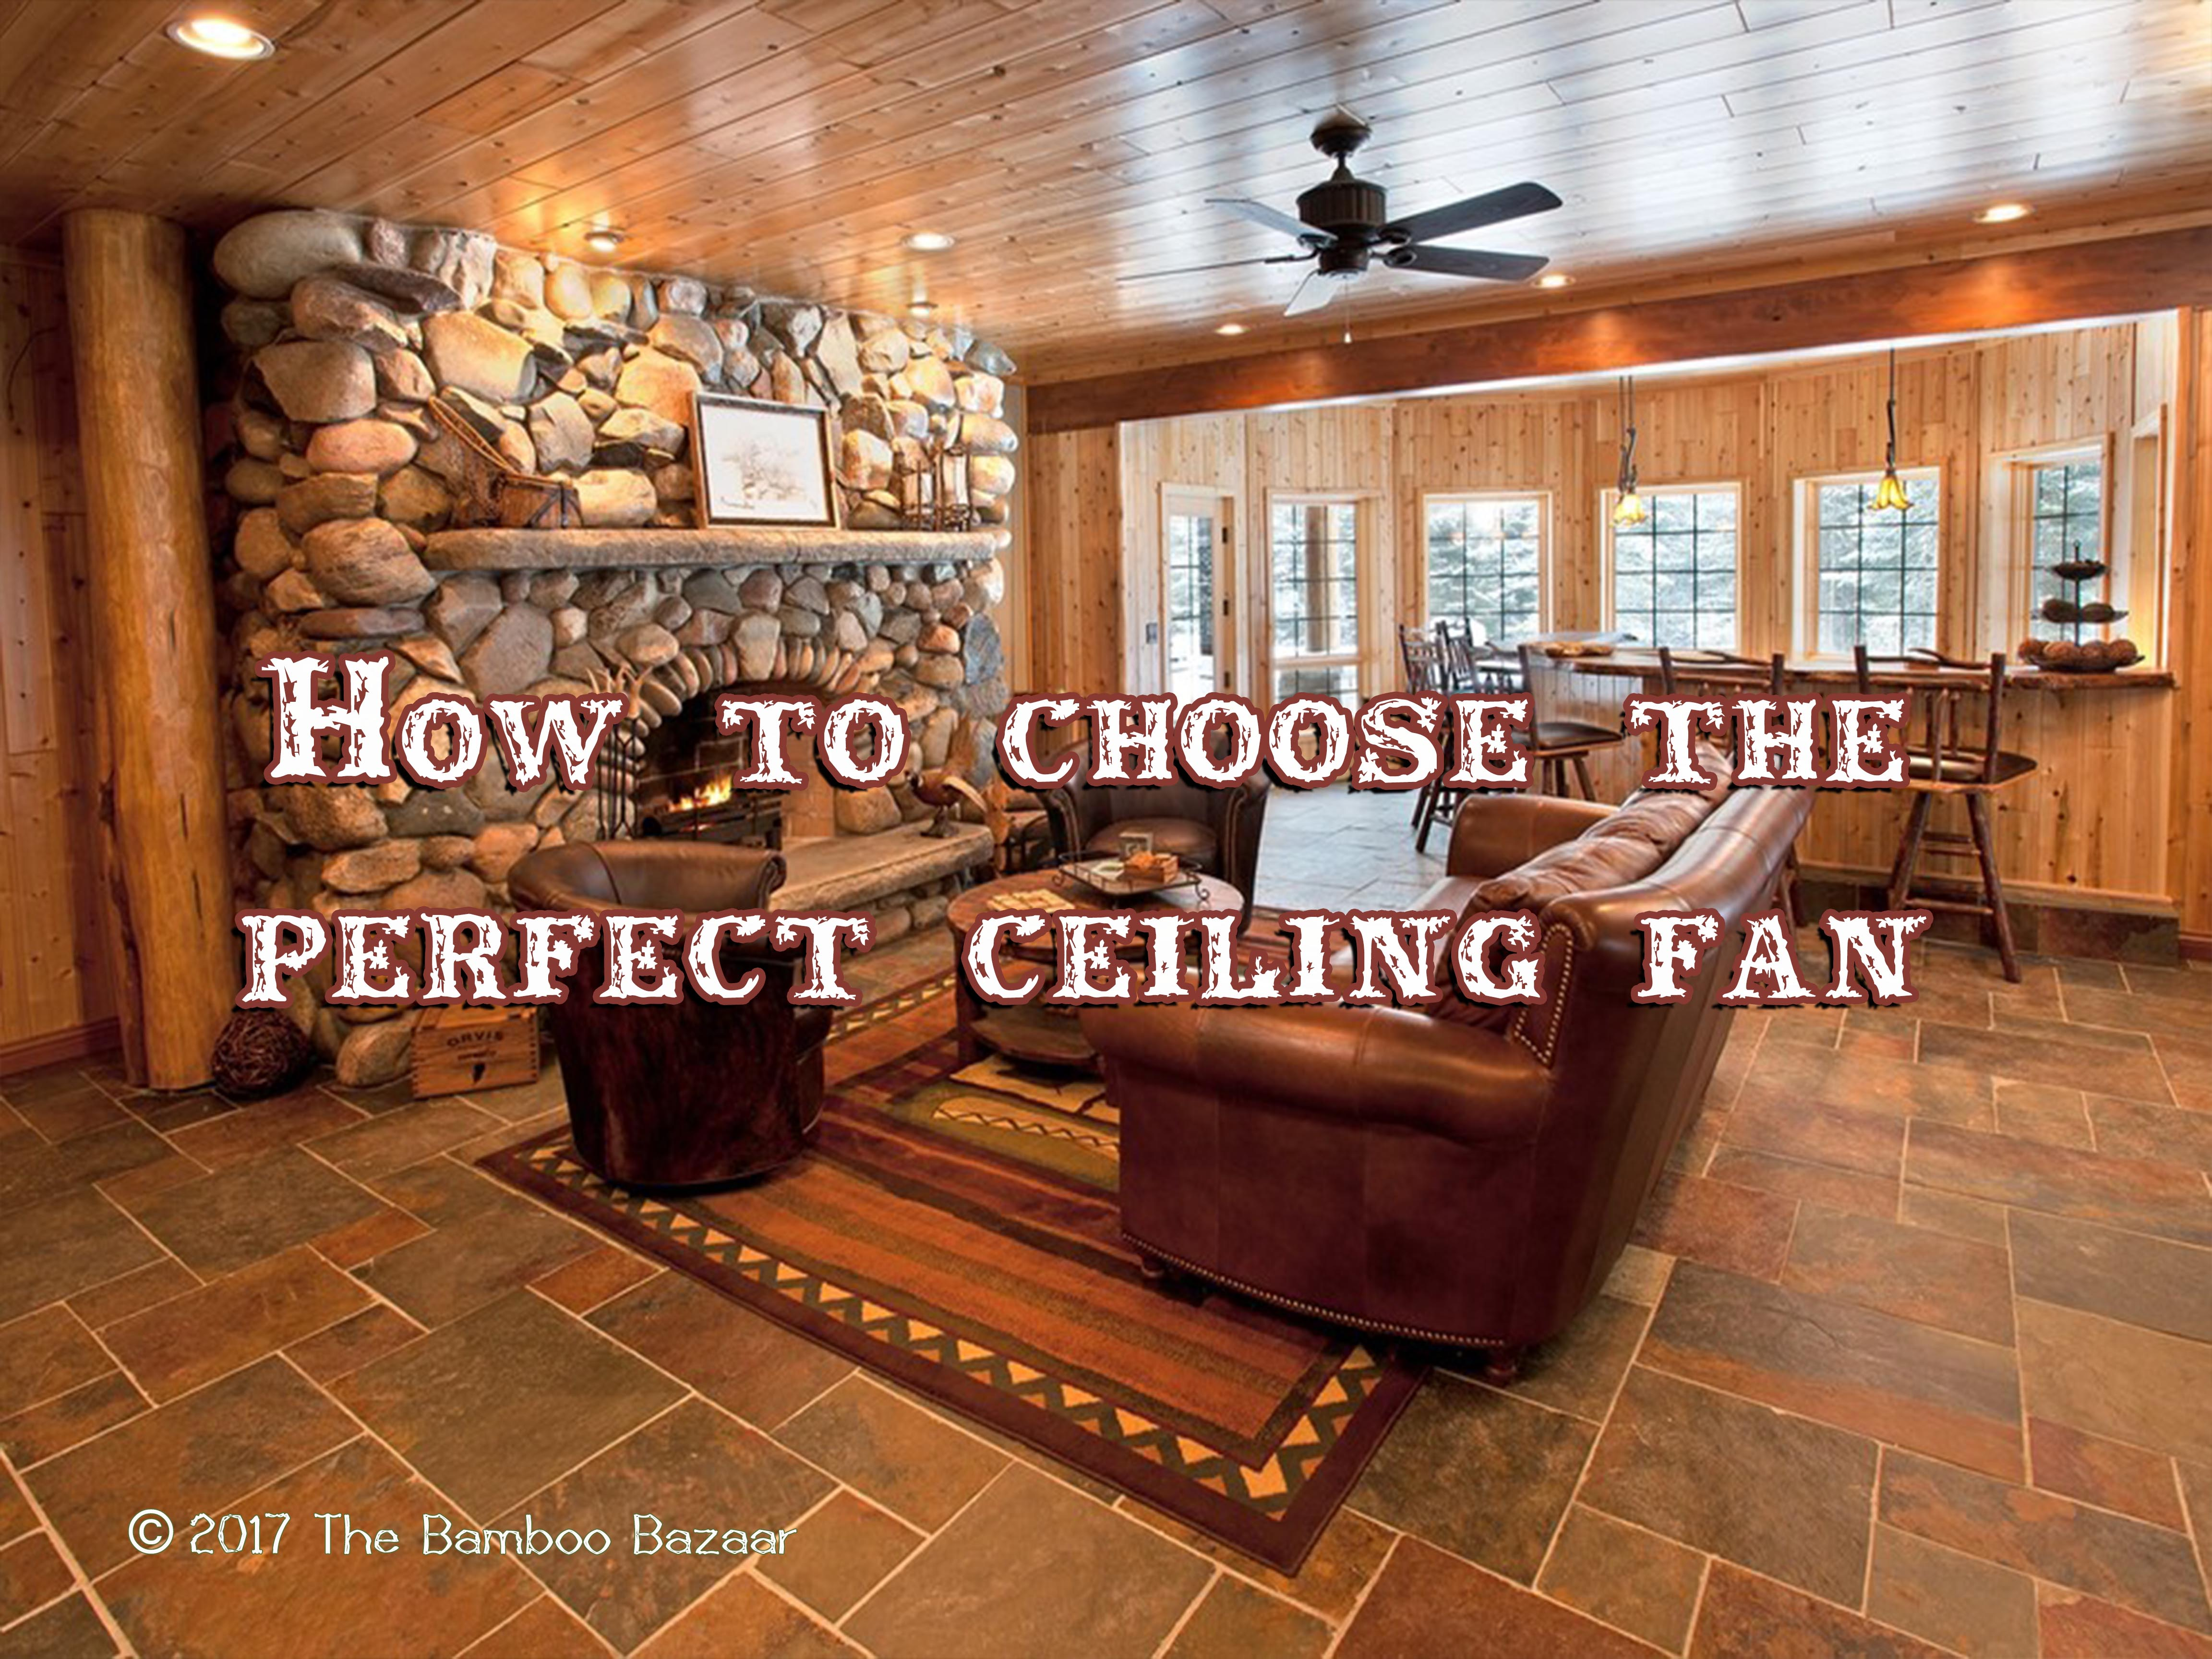 How to choose the perfect ceiling fan